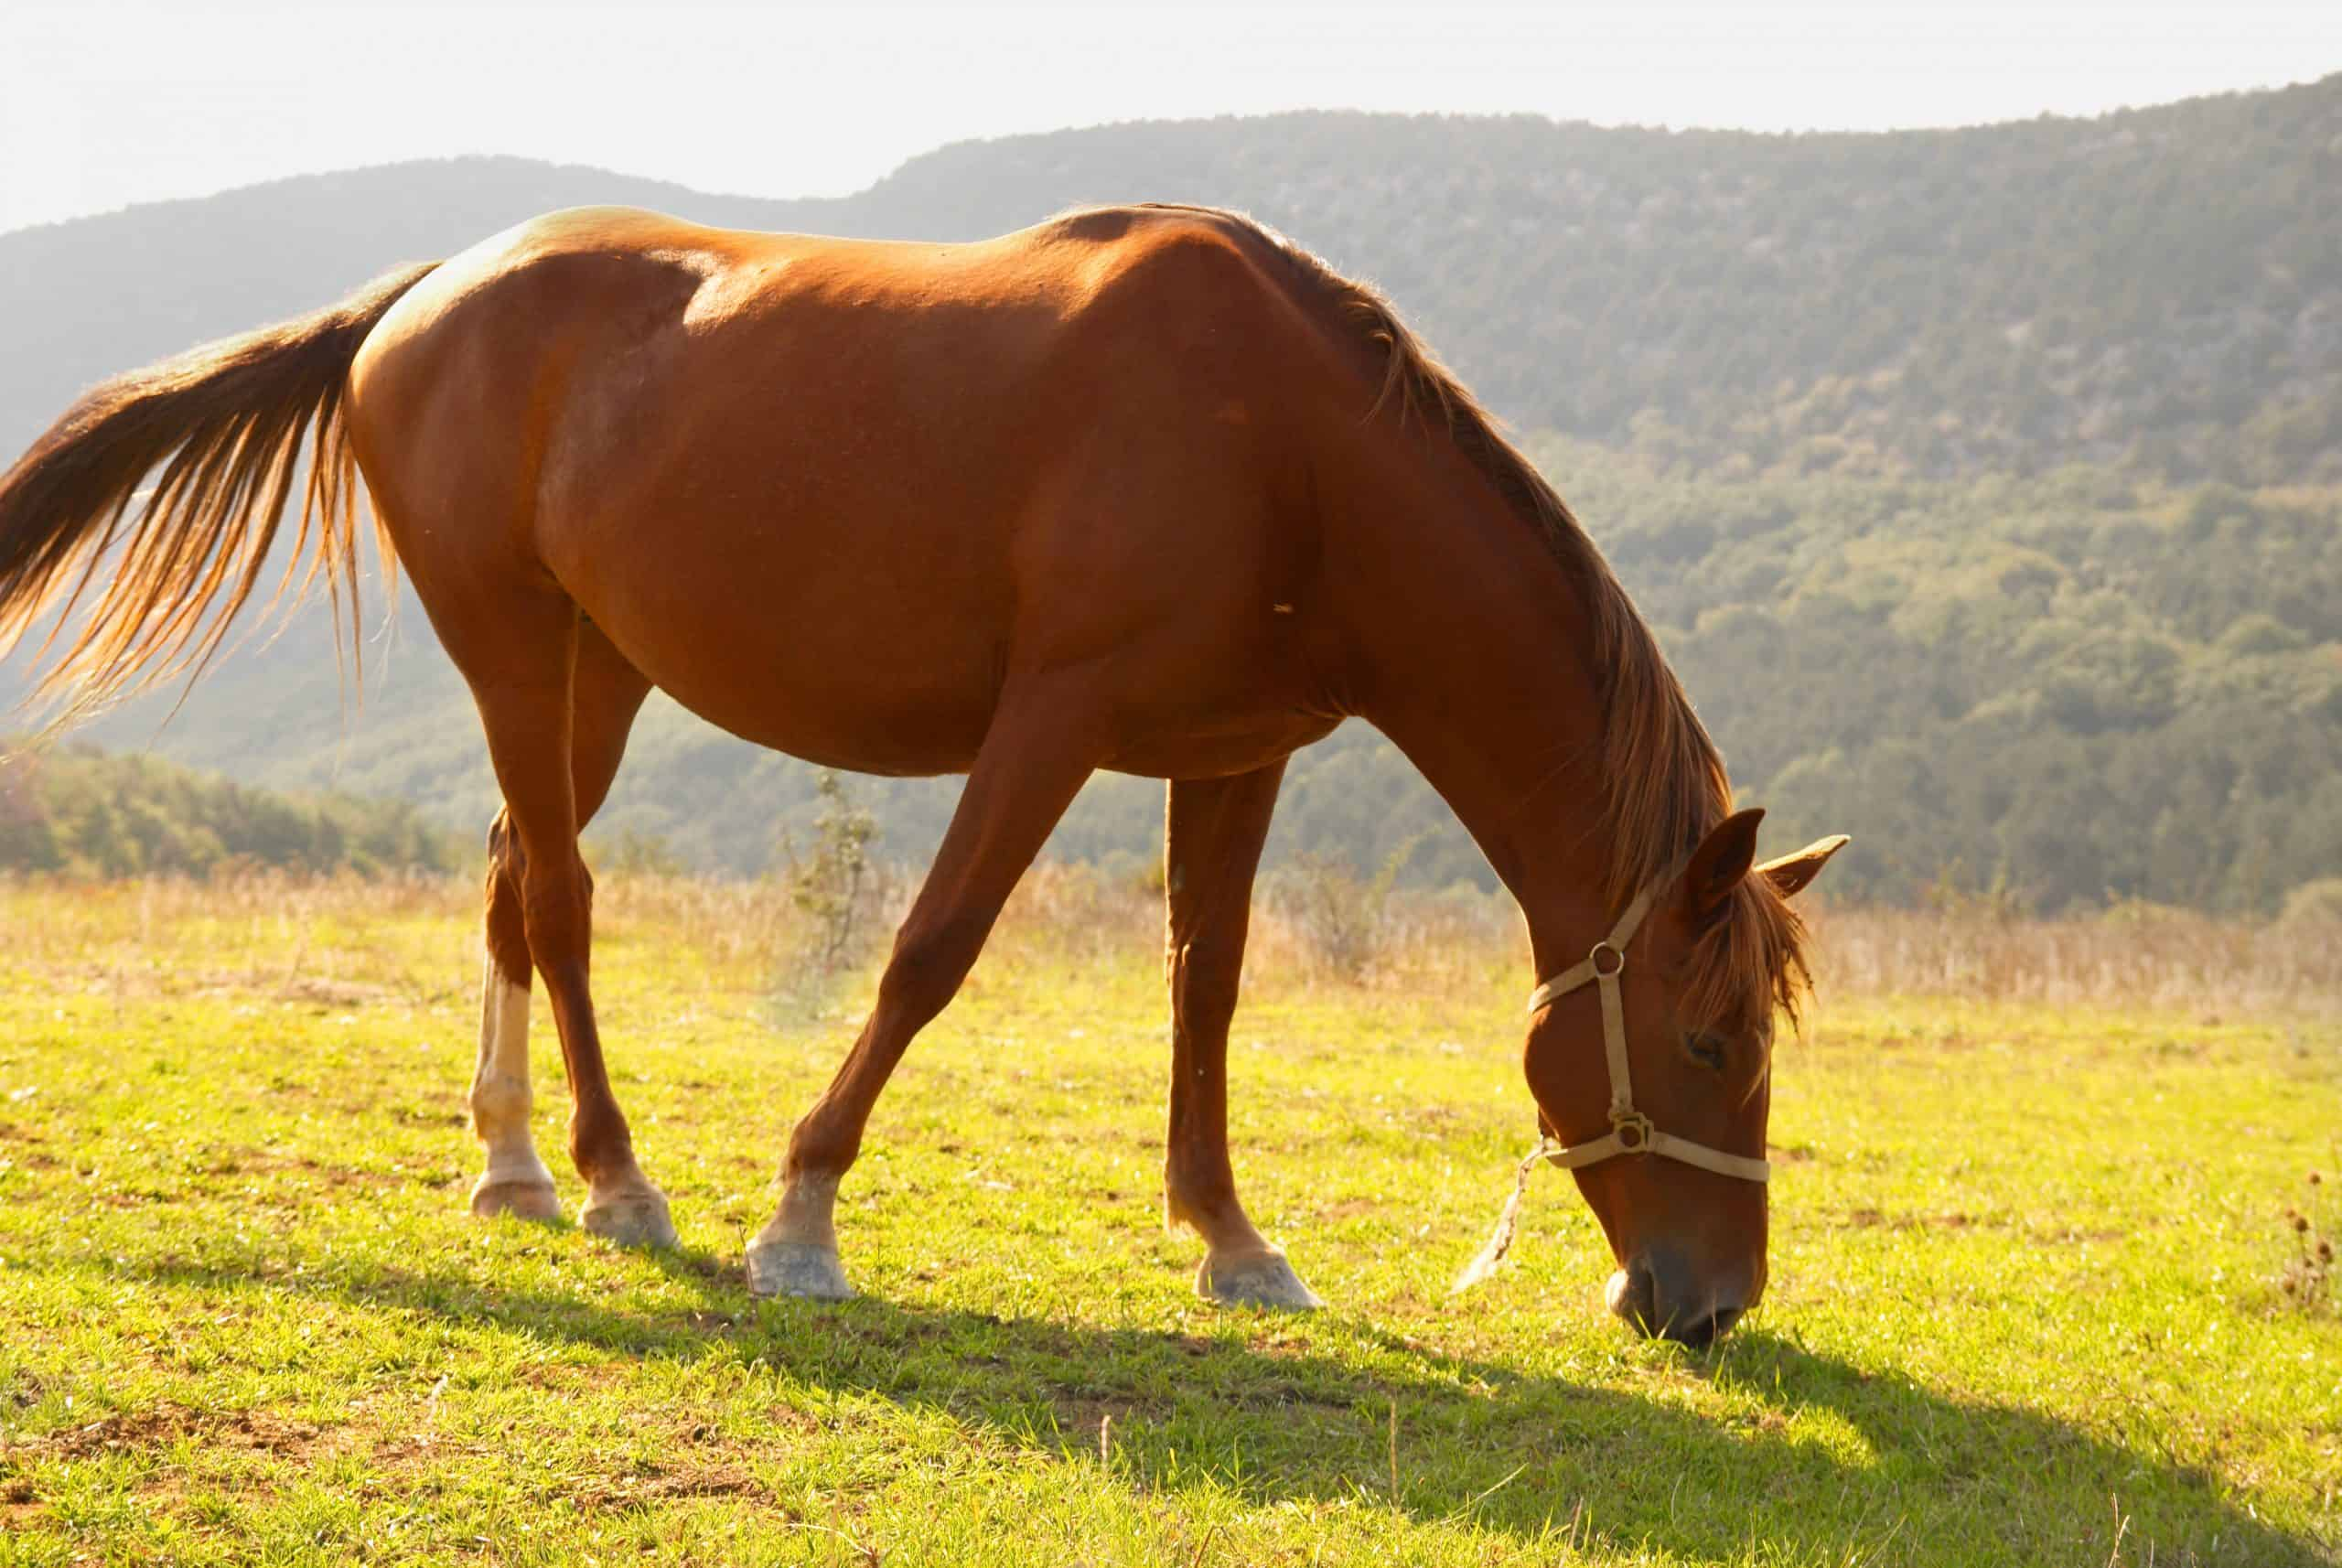 Grazing horse in the field.